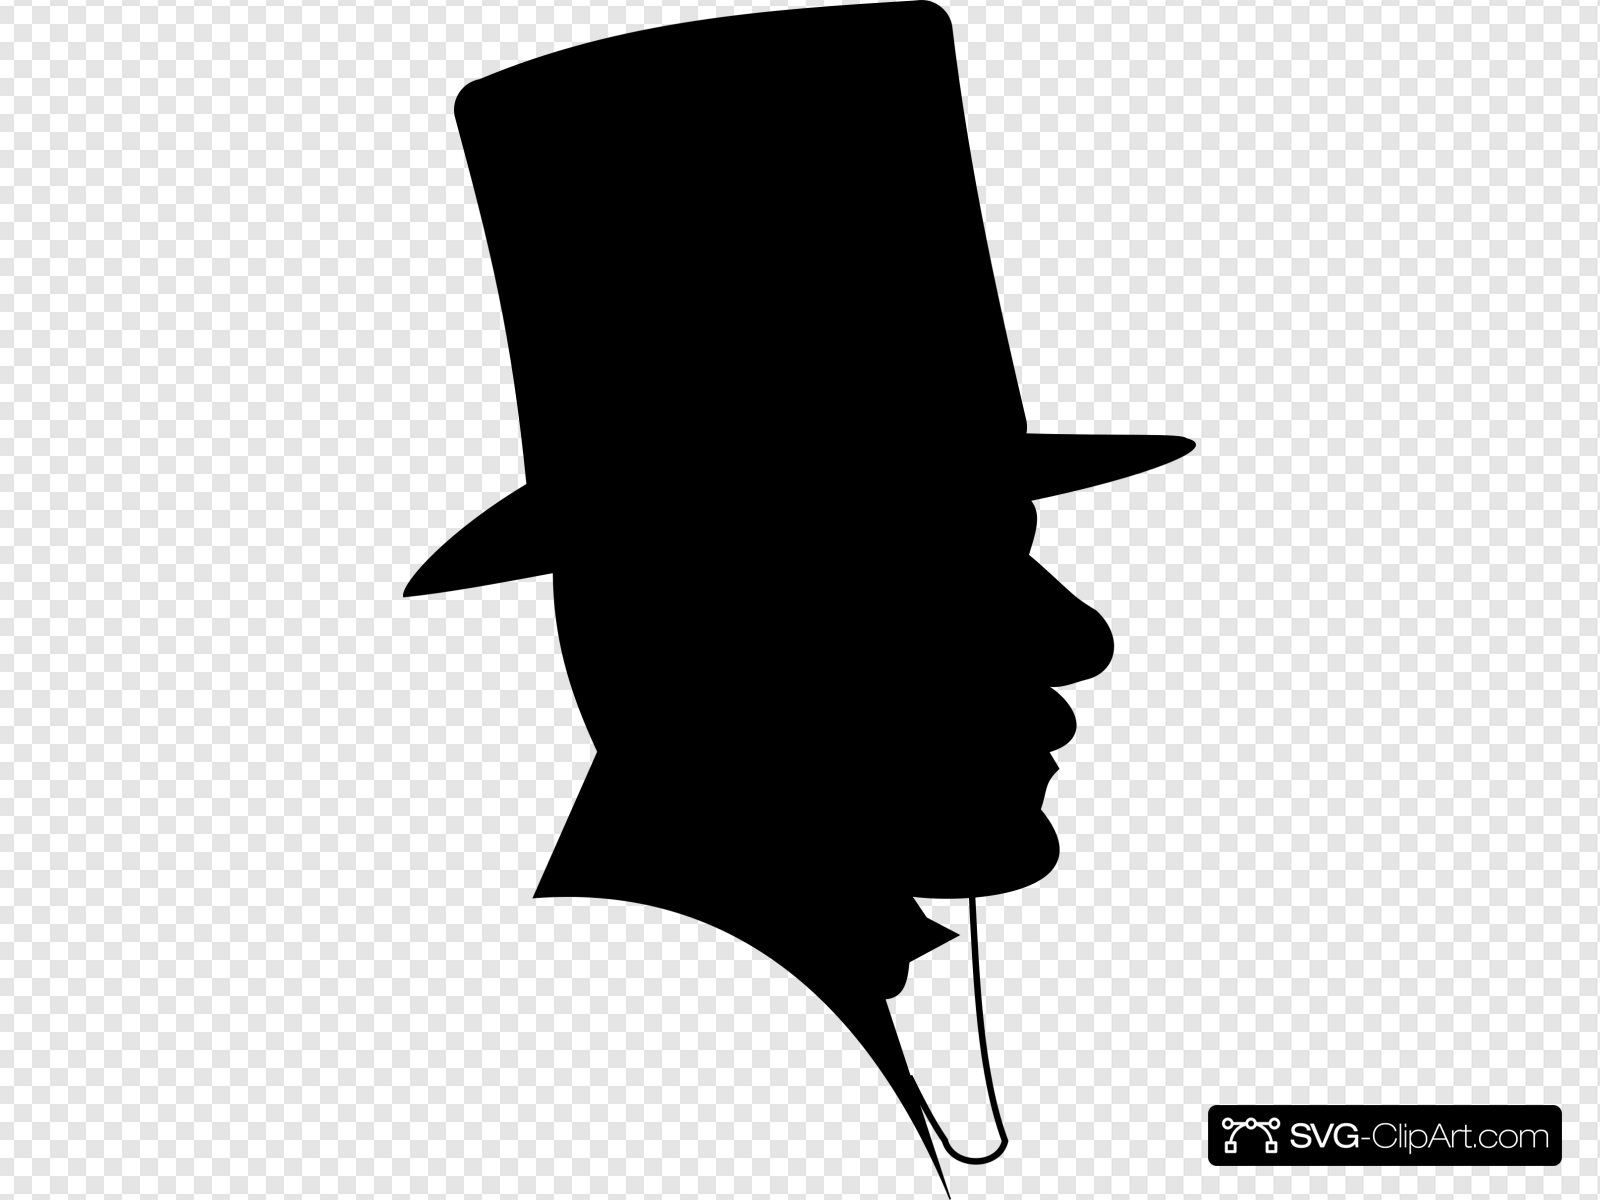 Man Wearing A Top Hat Clip art, Icon and SVG.